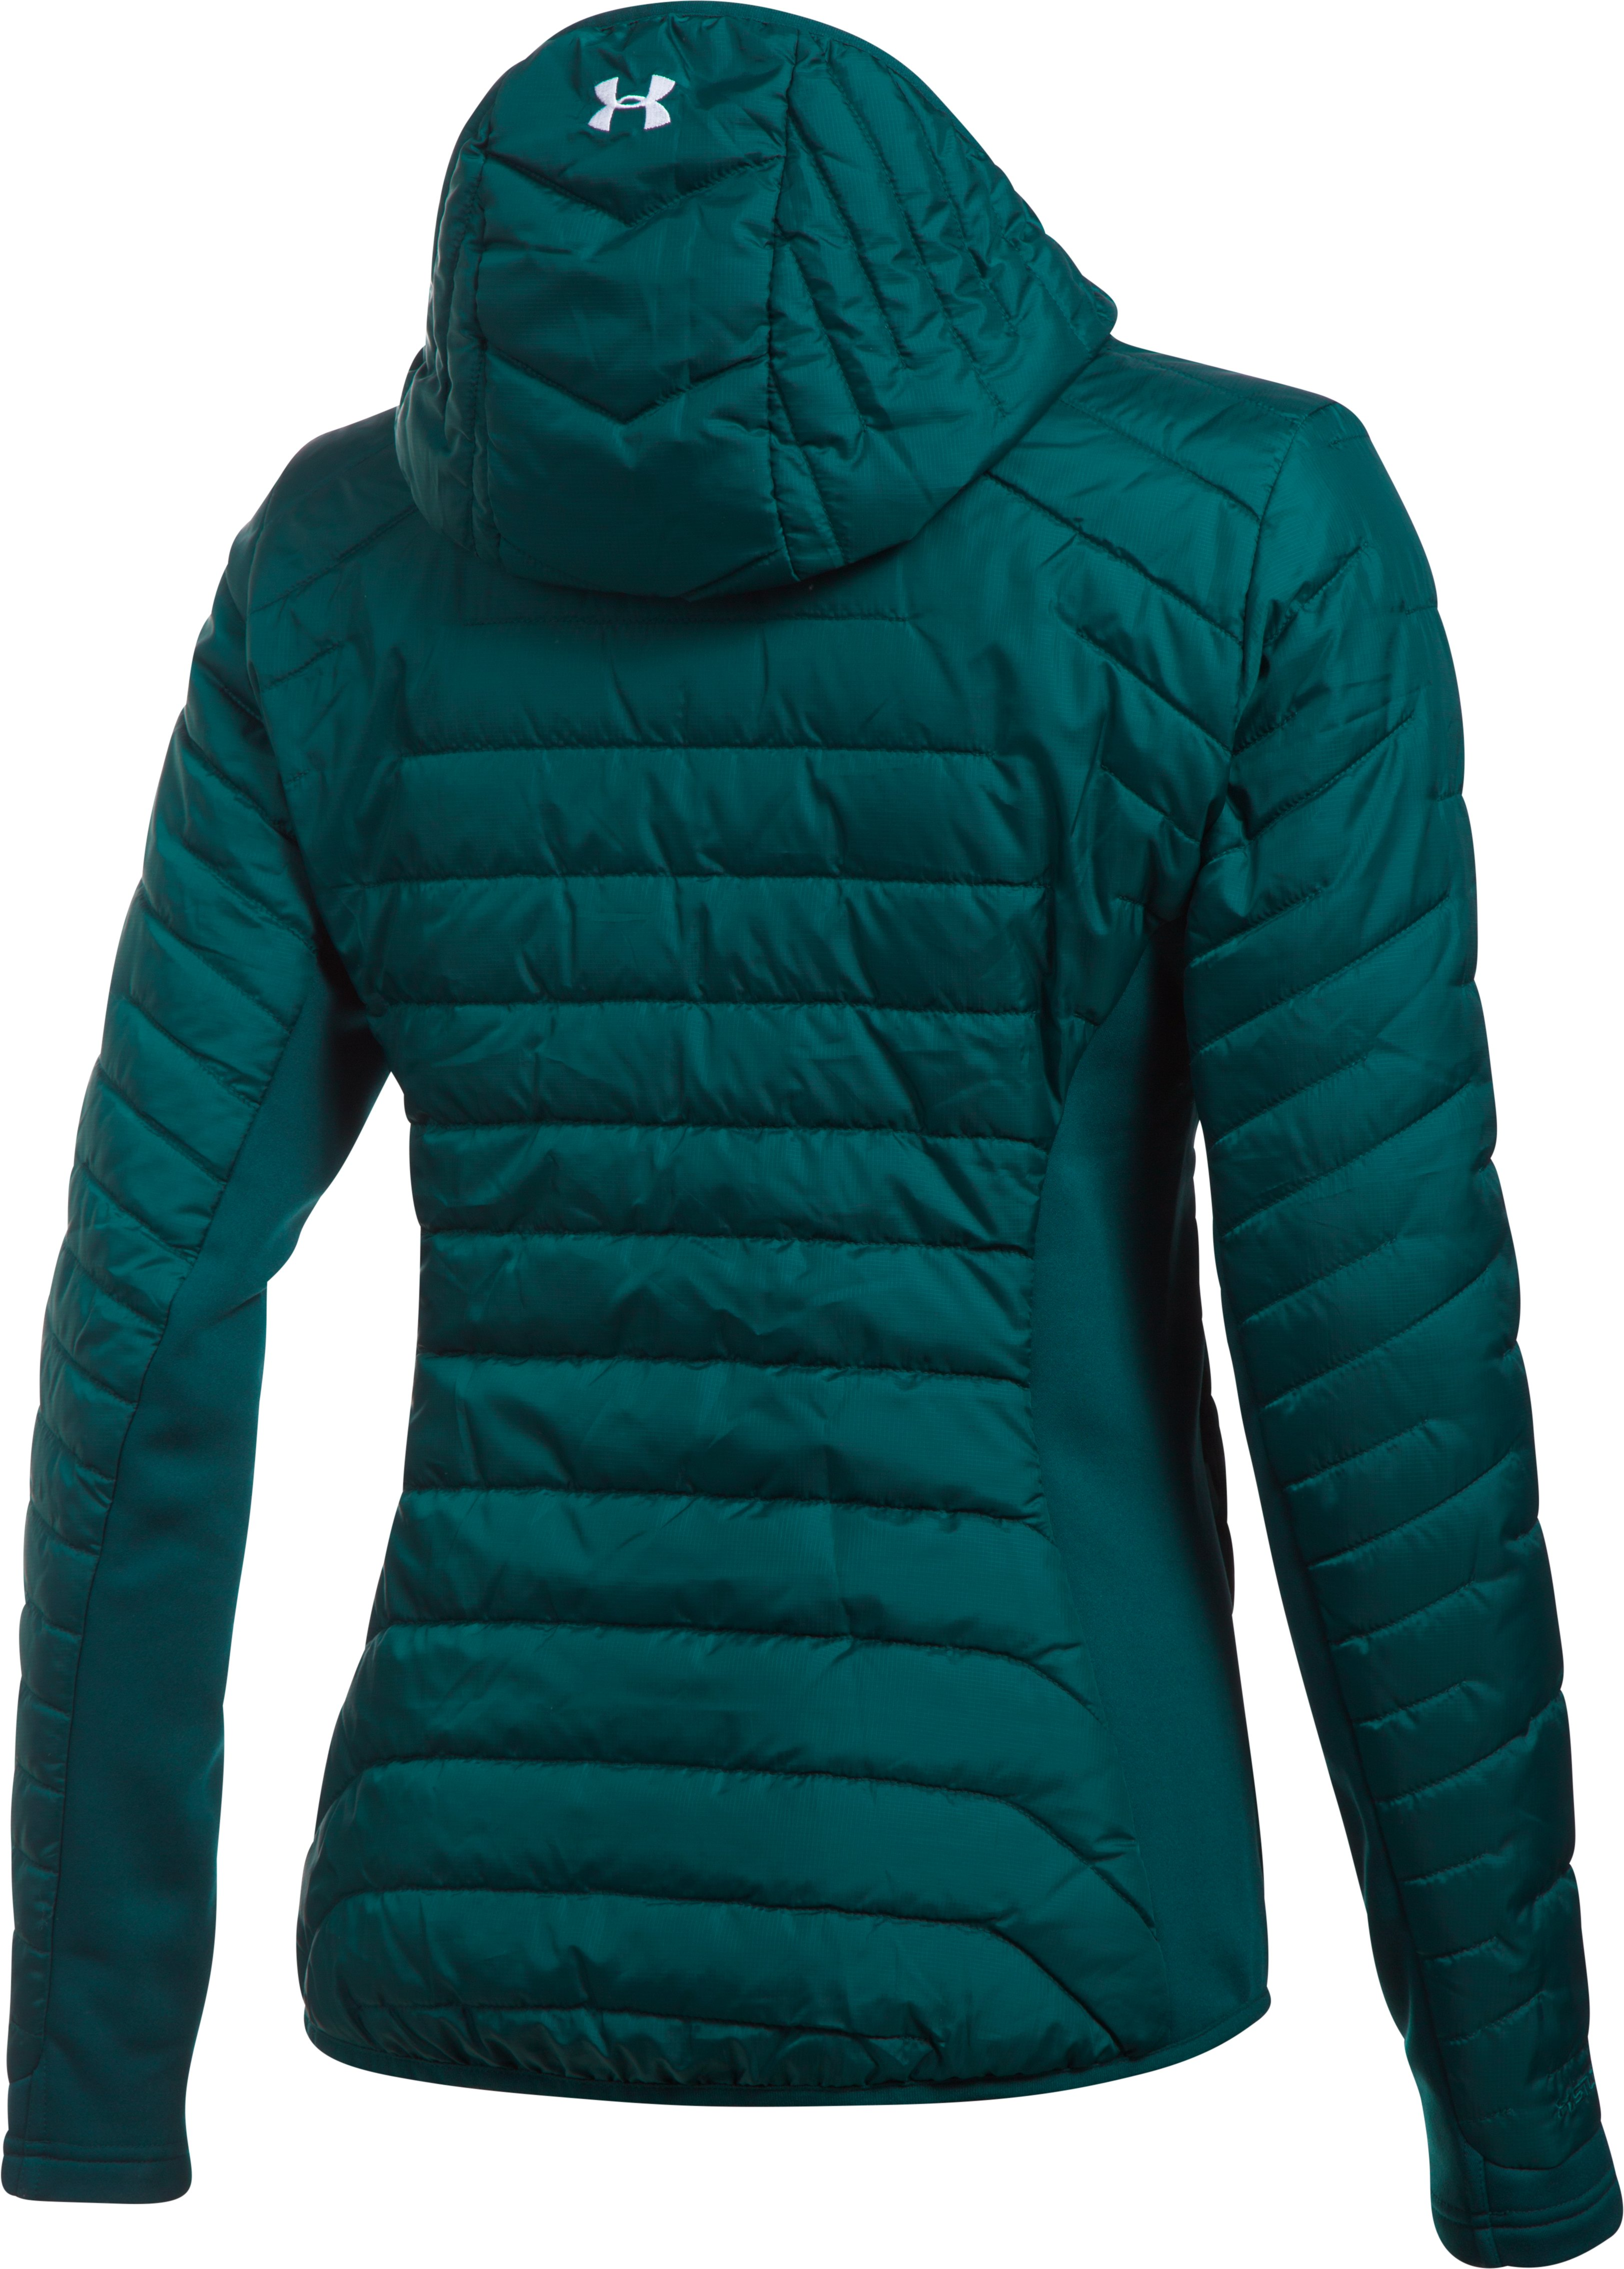 Women's ColdGear® Reactor Hybrid Jacket, ARDEN GREEN,